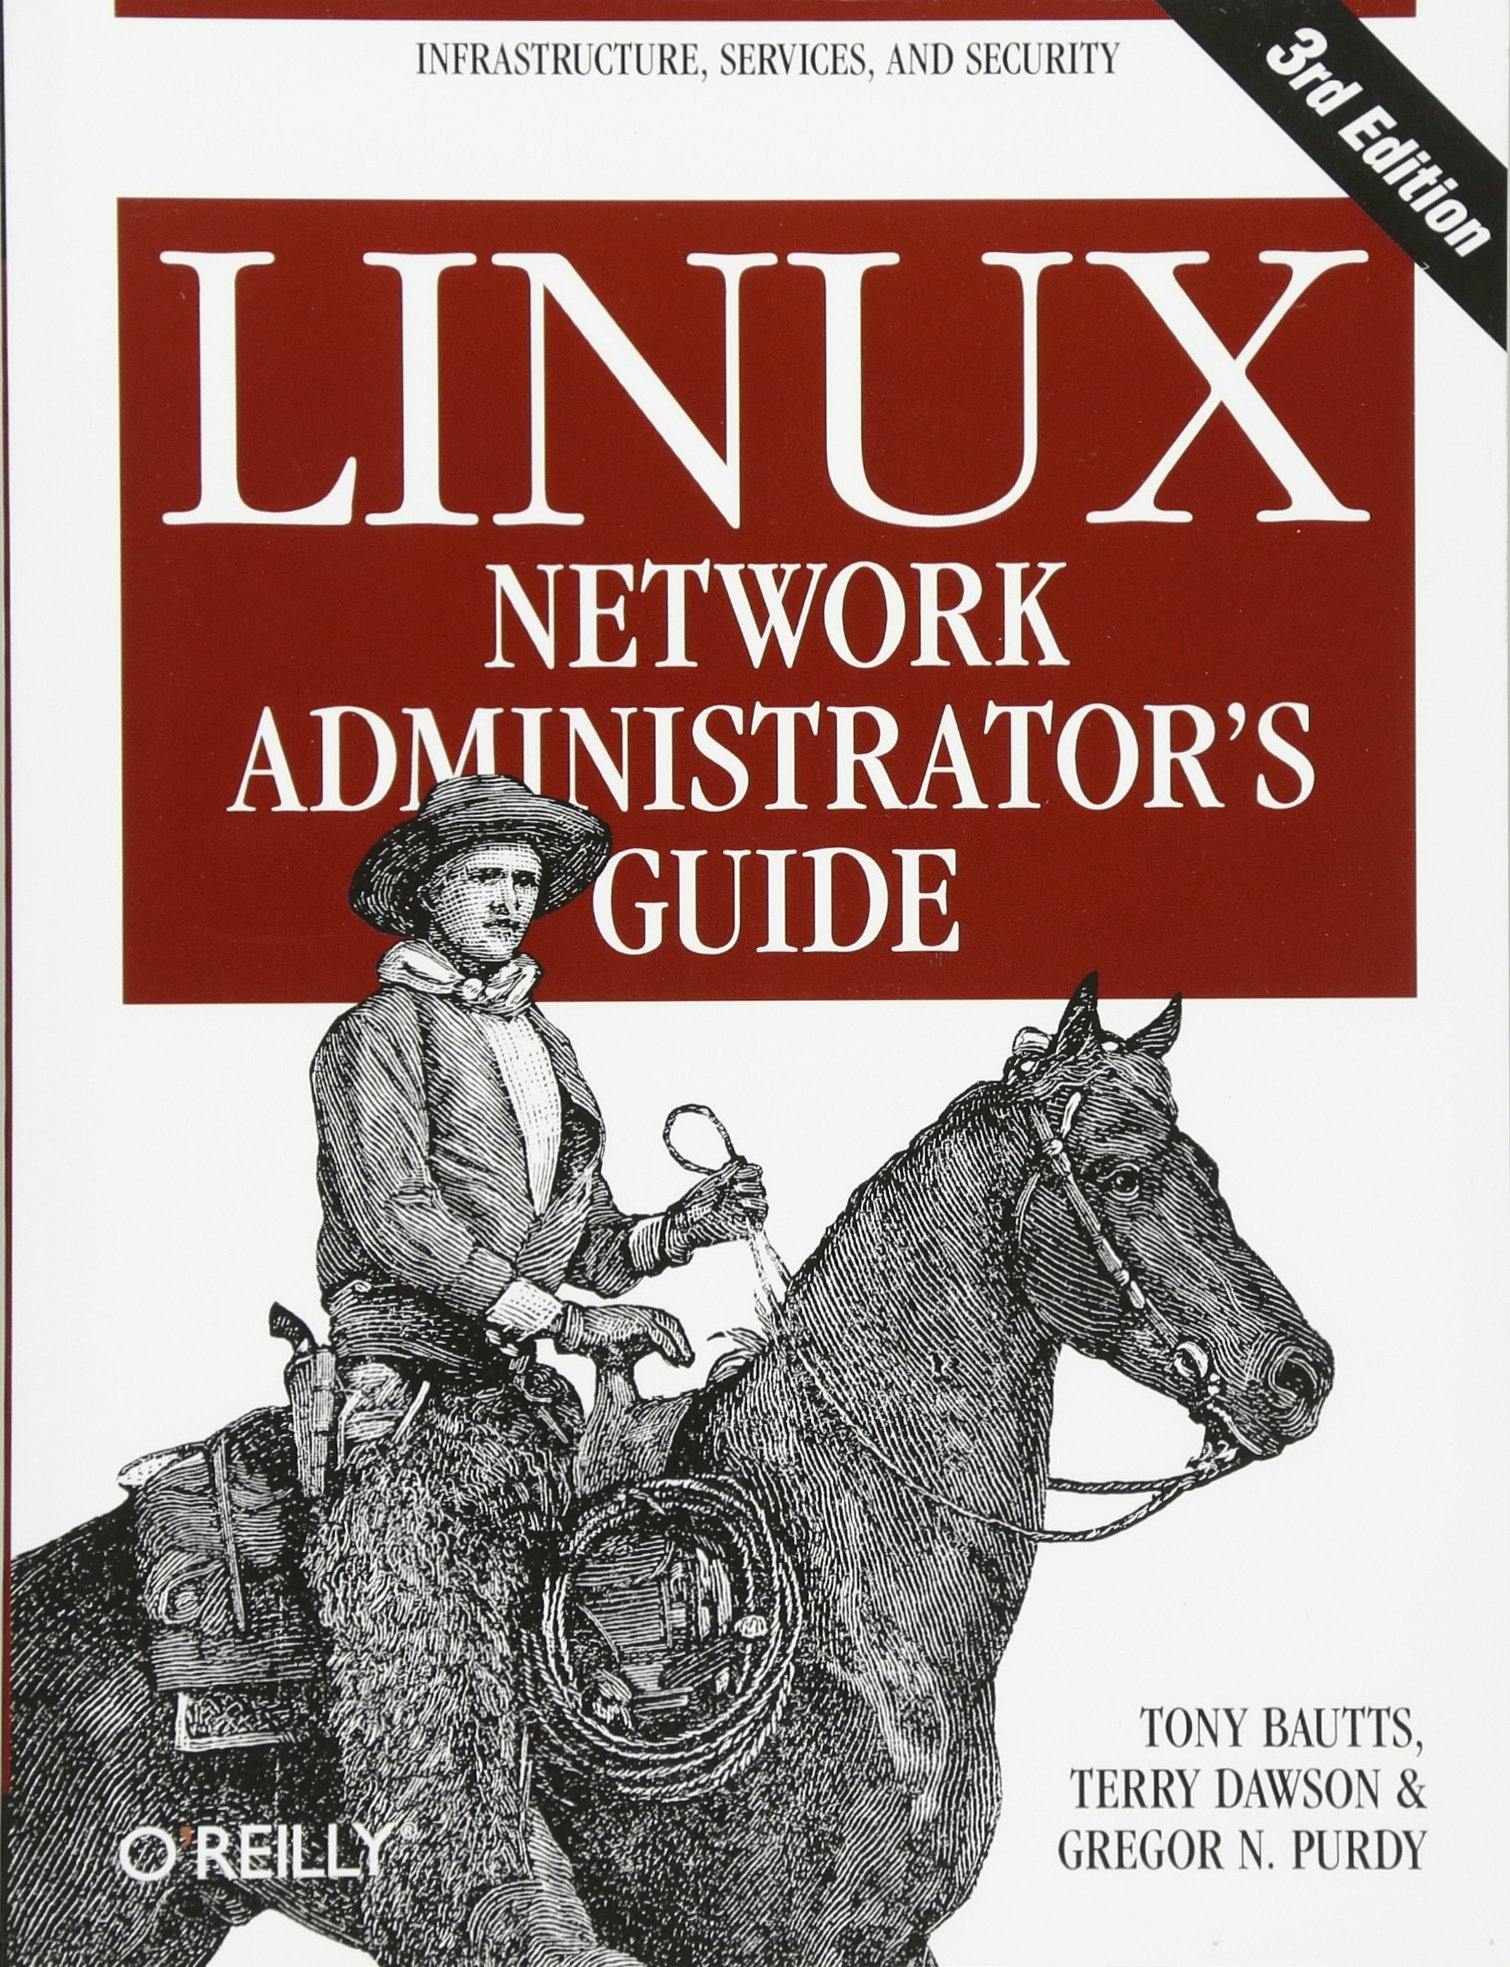 Read Online Linux Network Administrator's Guide: Infrastructure, Services, and Security PDF ePub ebook